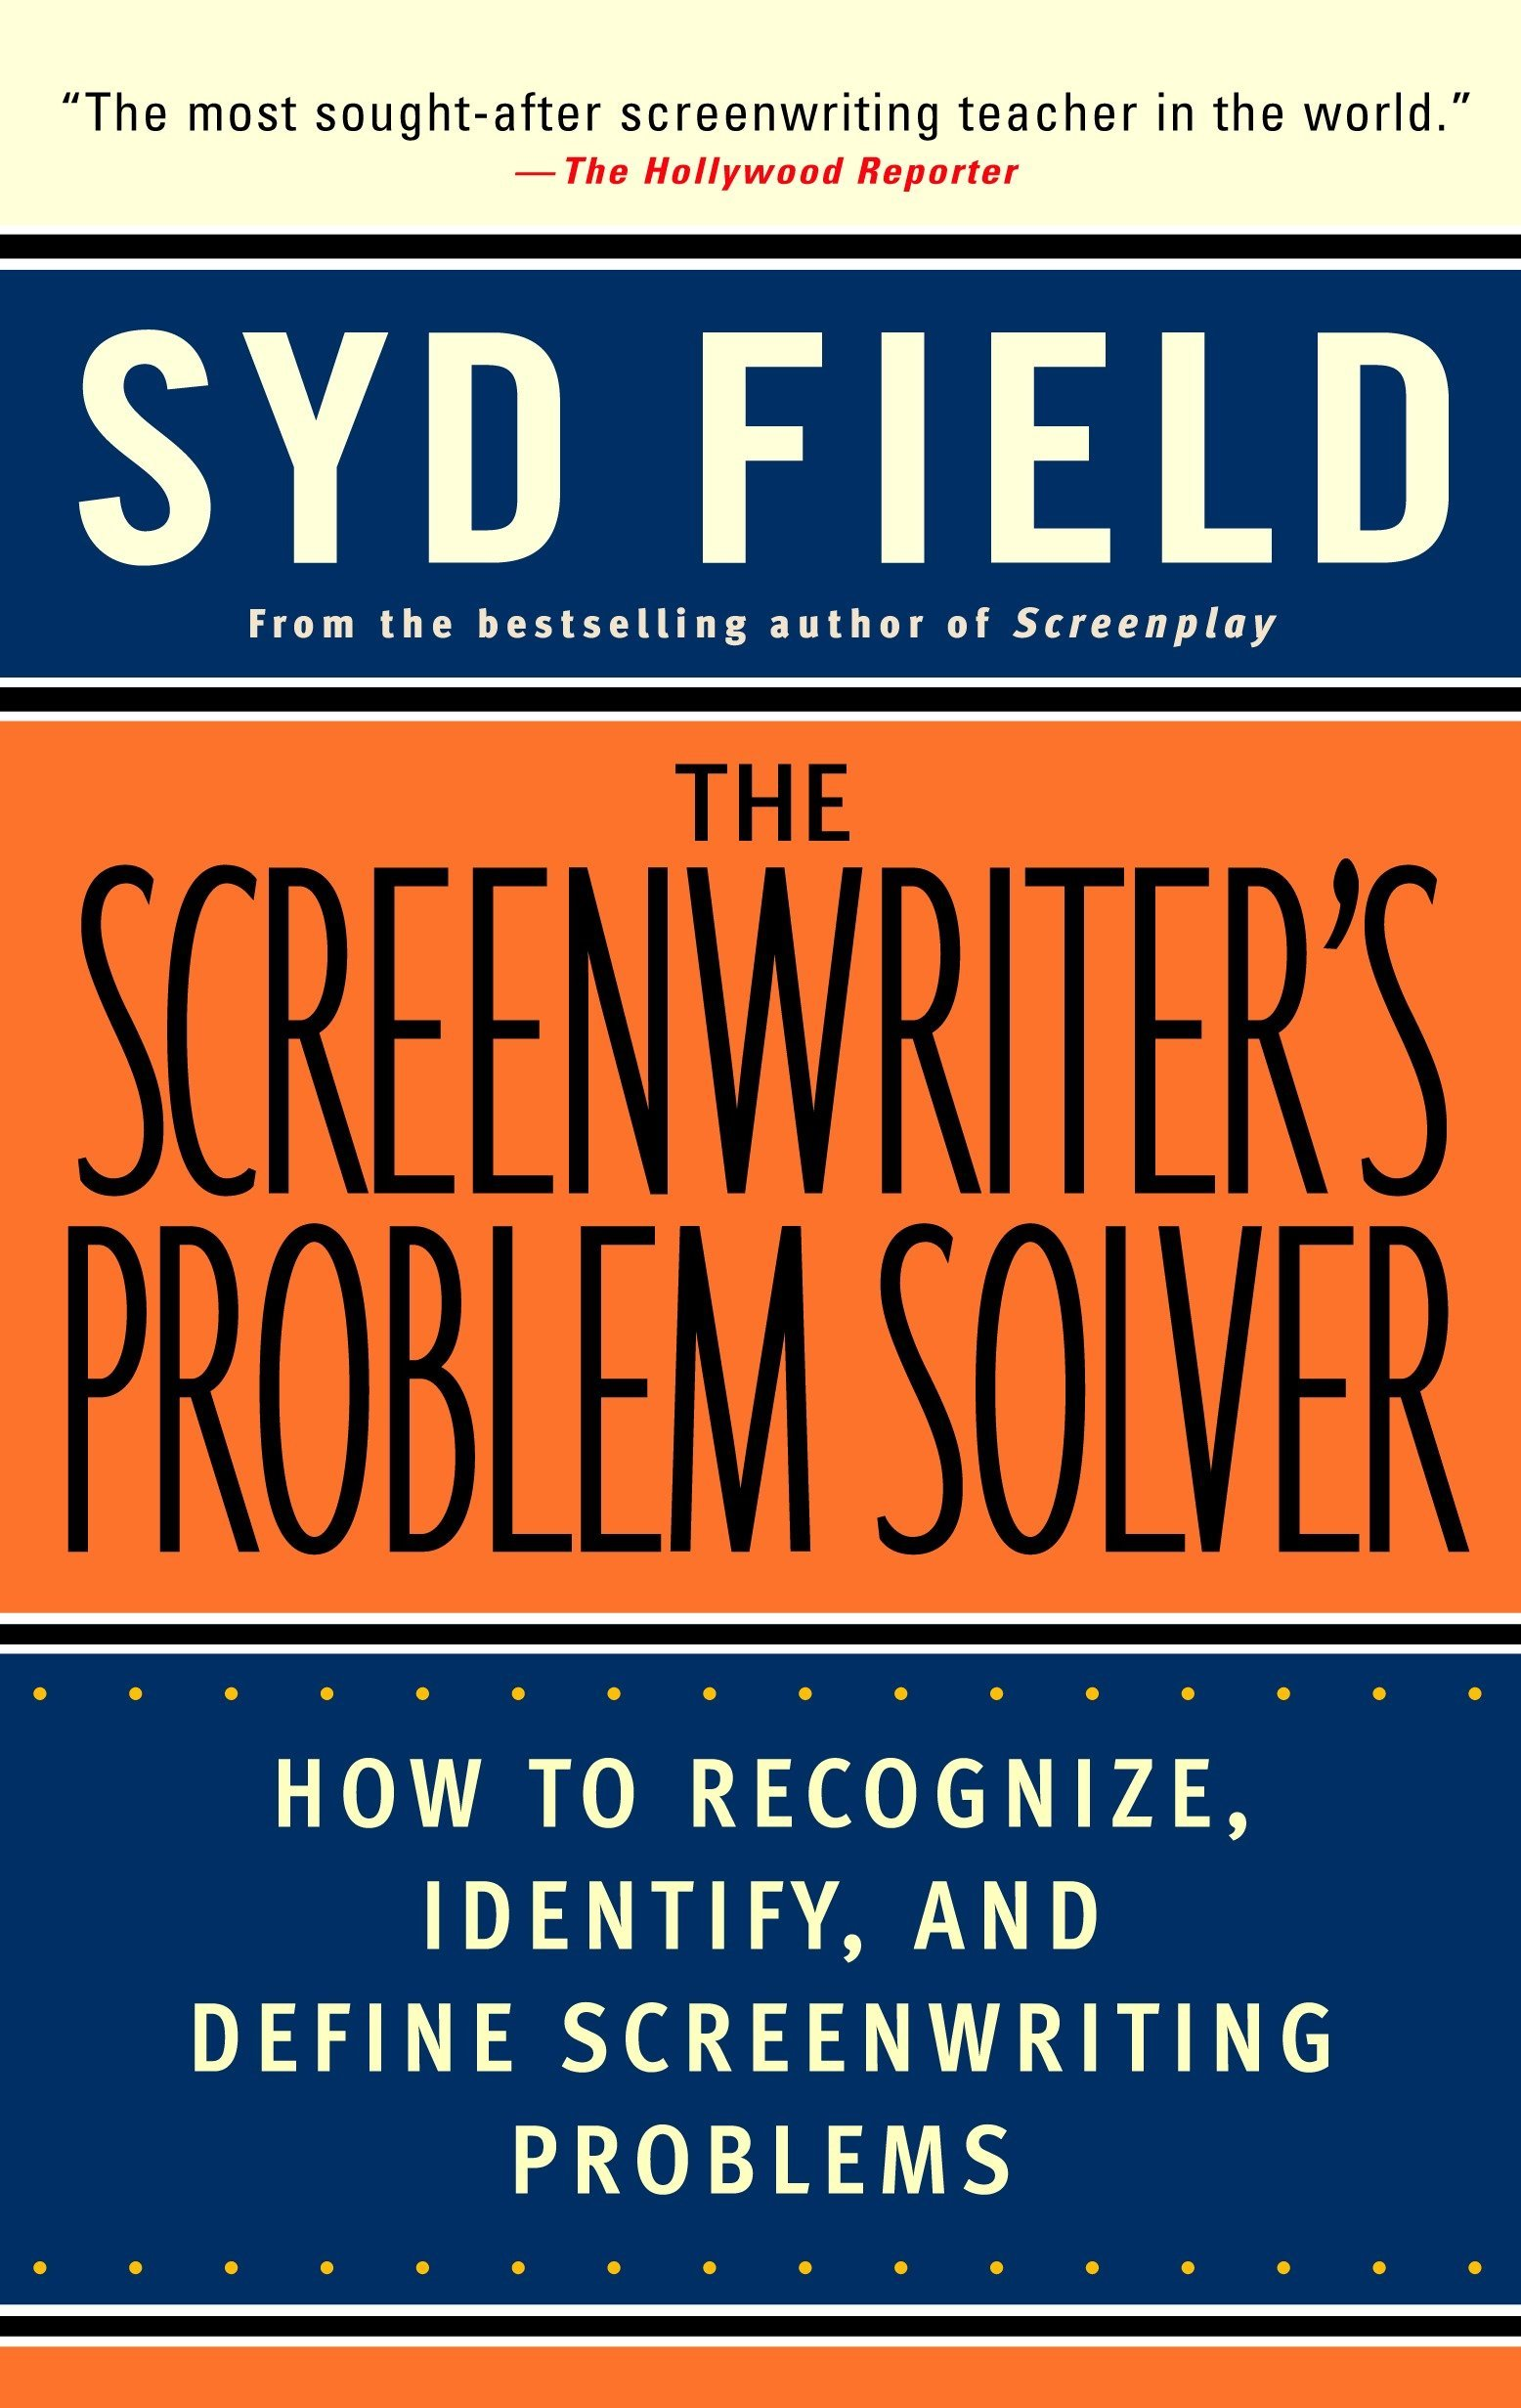 Download Ebook Screenwriters Problem Solver How To Recognize Identify And Define Screenwriting Problems Dell Trade Free Constructionmarketingadvisors Esquisse77 Fr